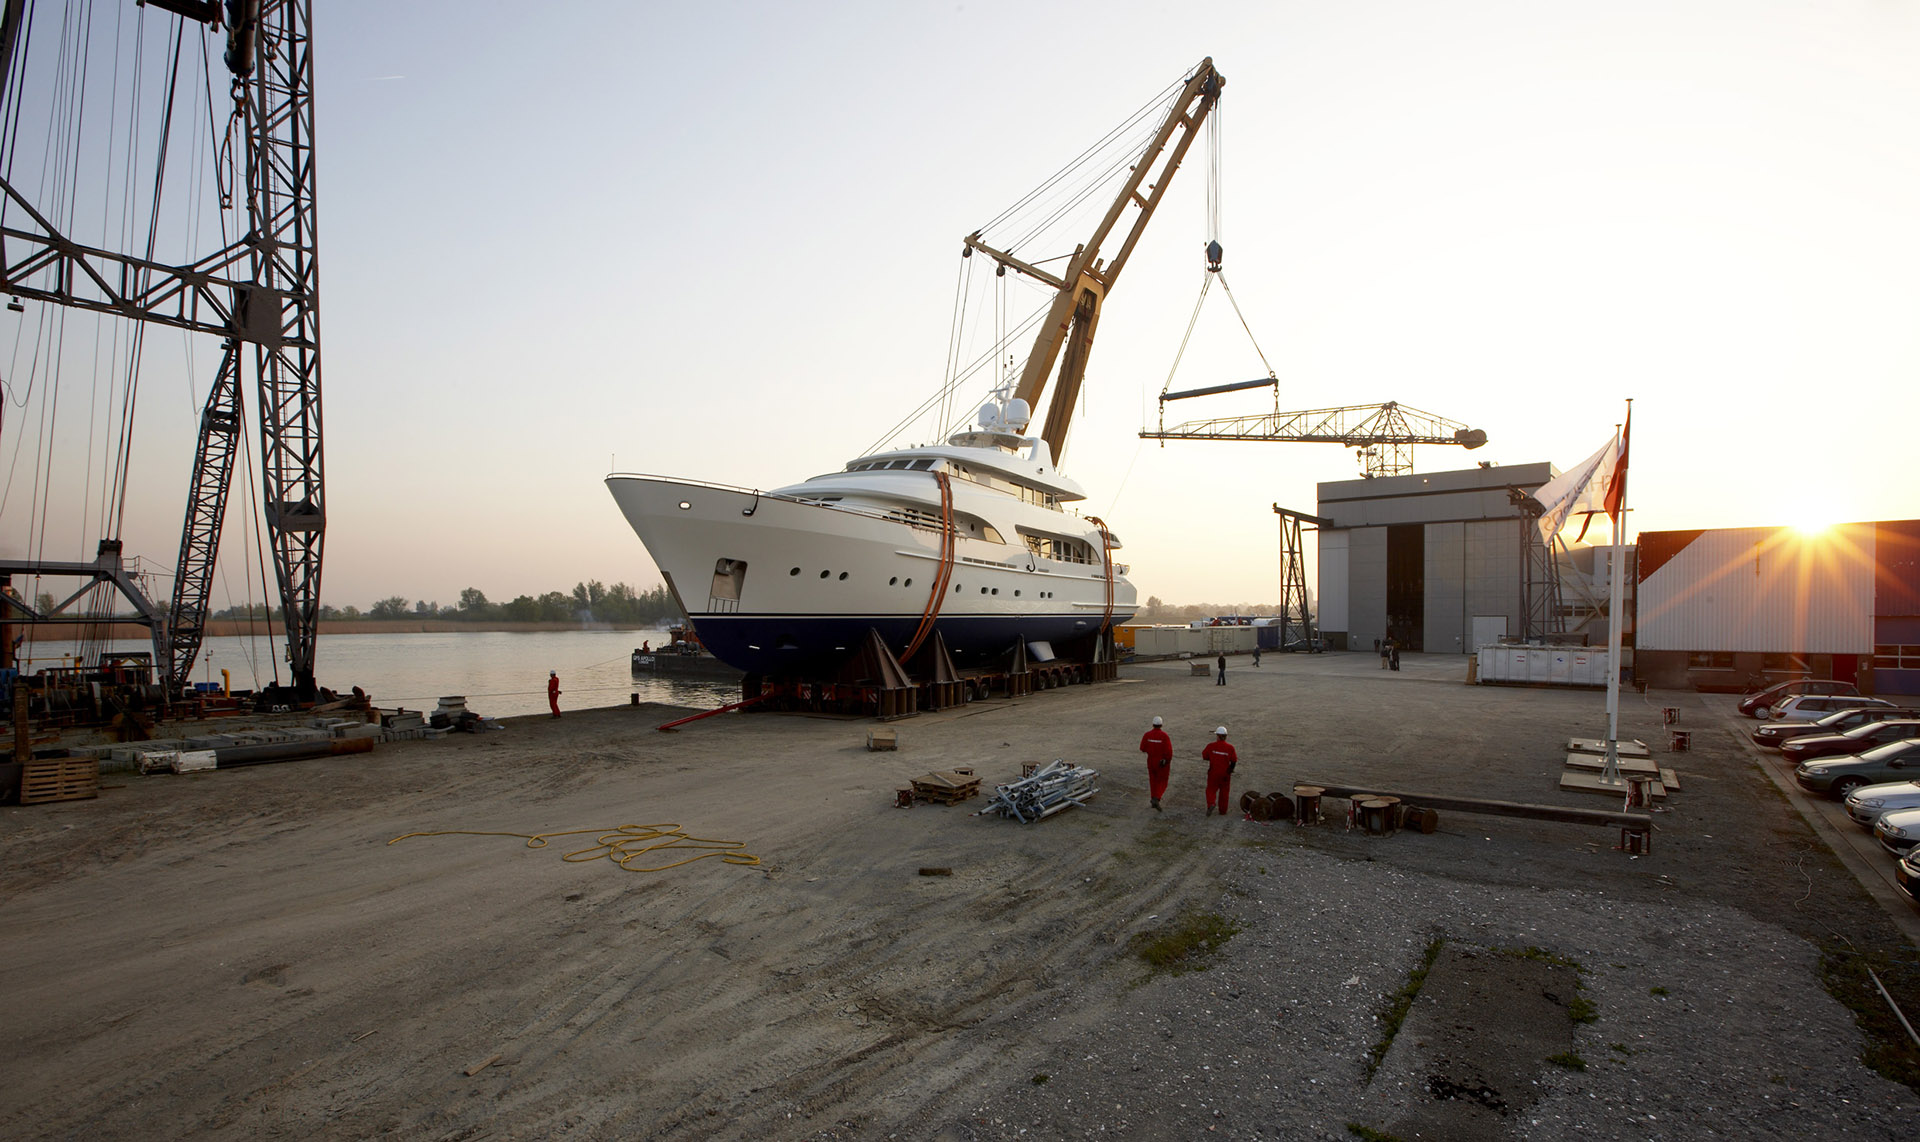 Moonen Shipyards BV - www.moonen.com - The Netherlands - +31 73 6210094